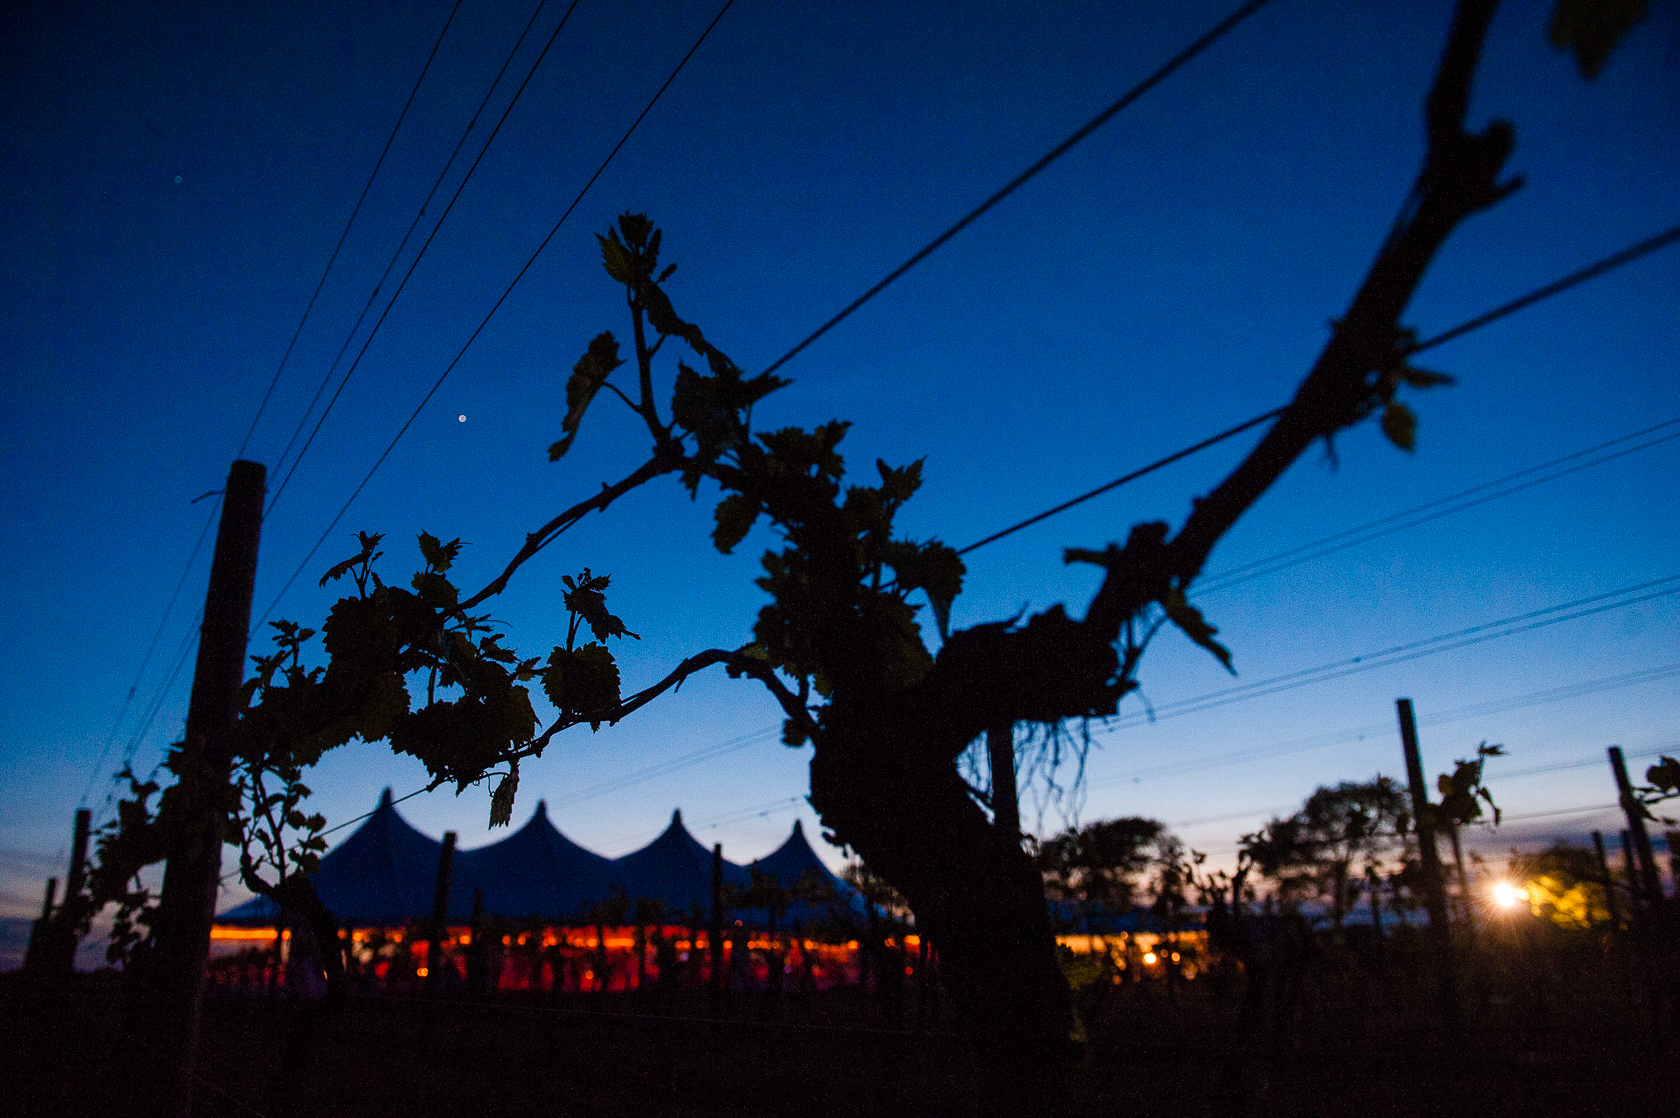 silhouette of  tented winery wedding